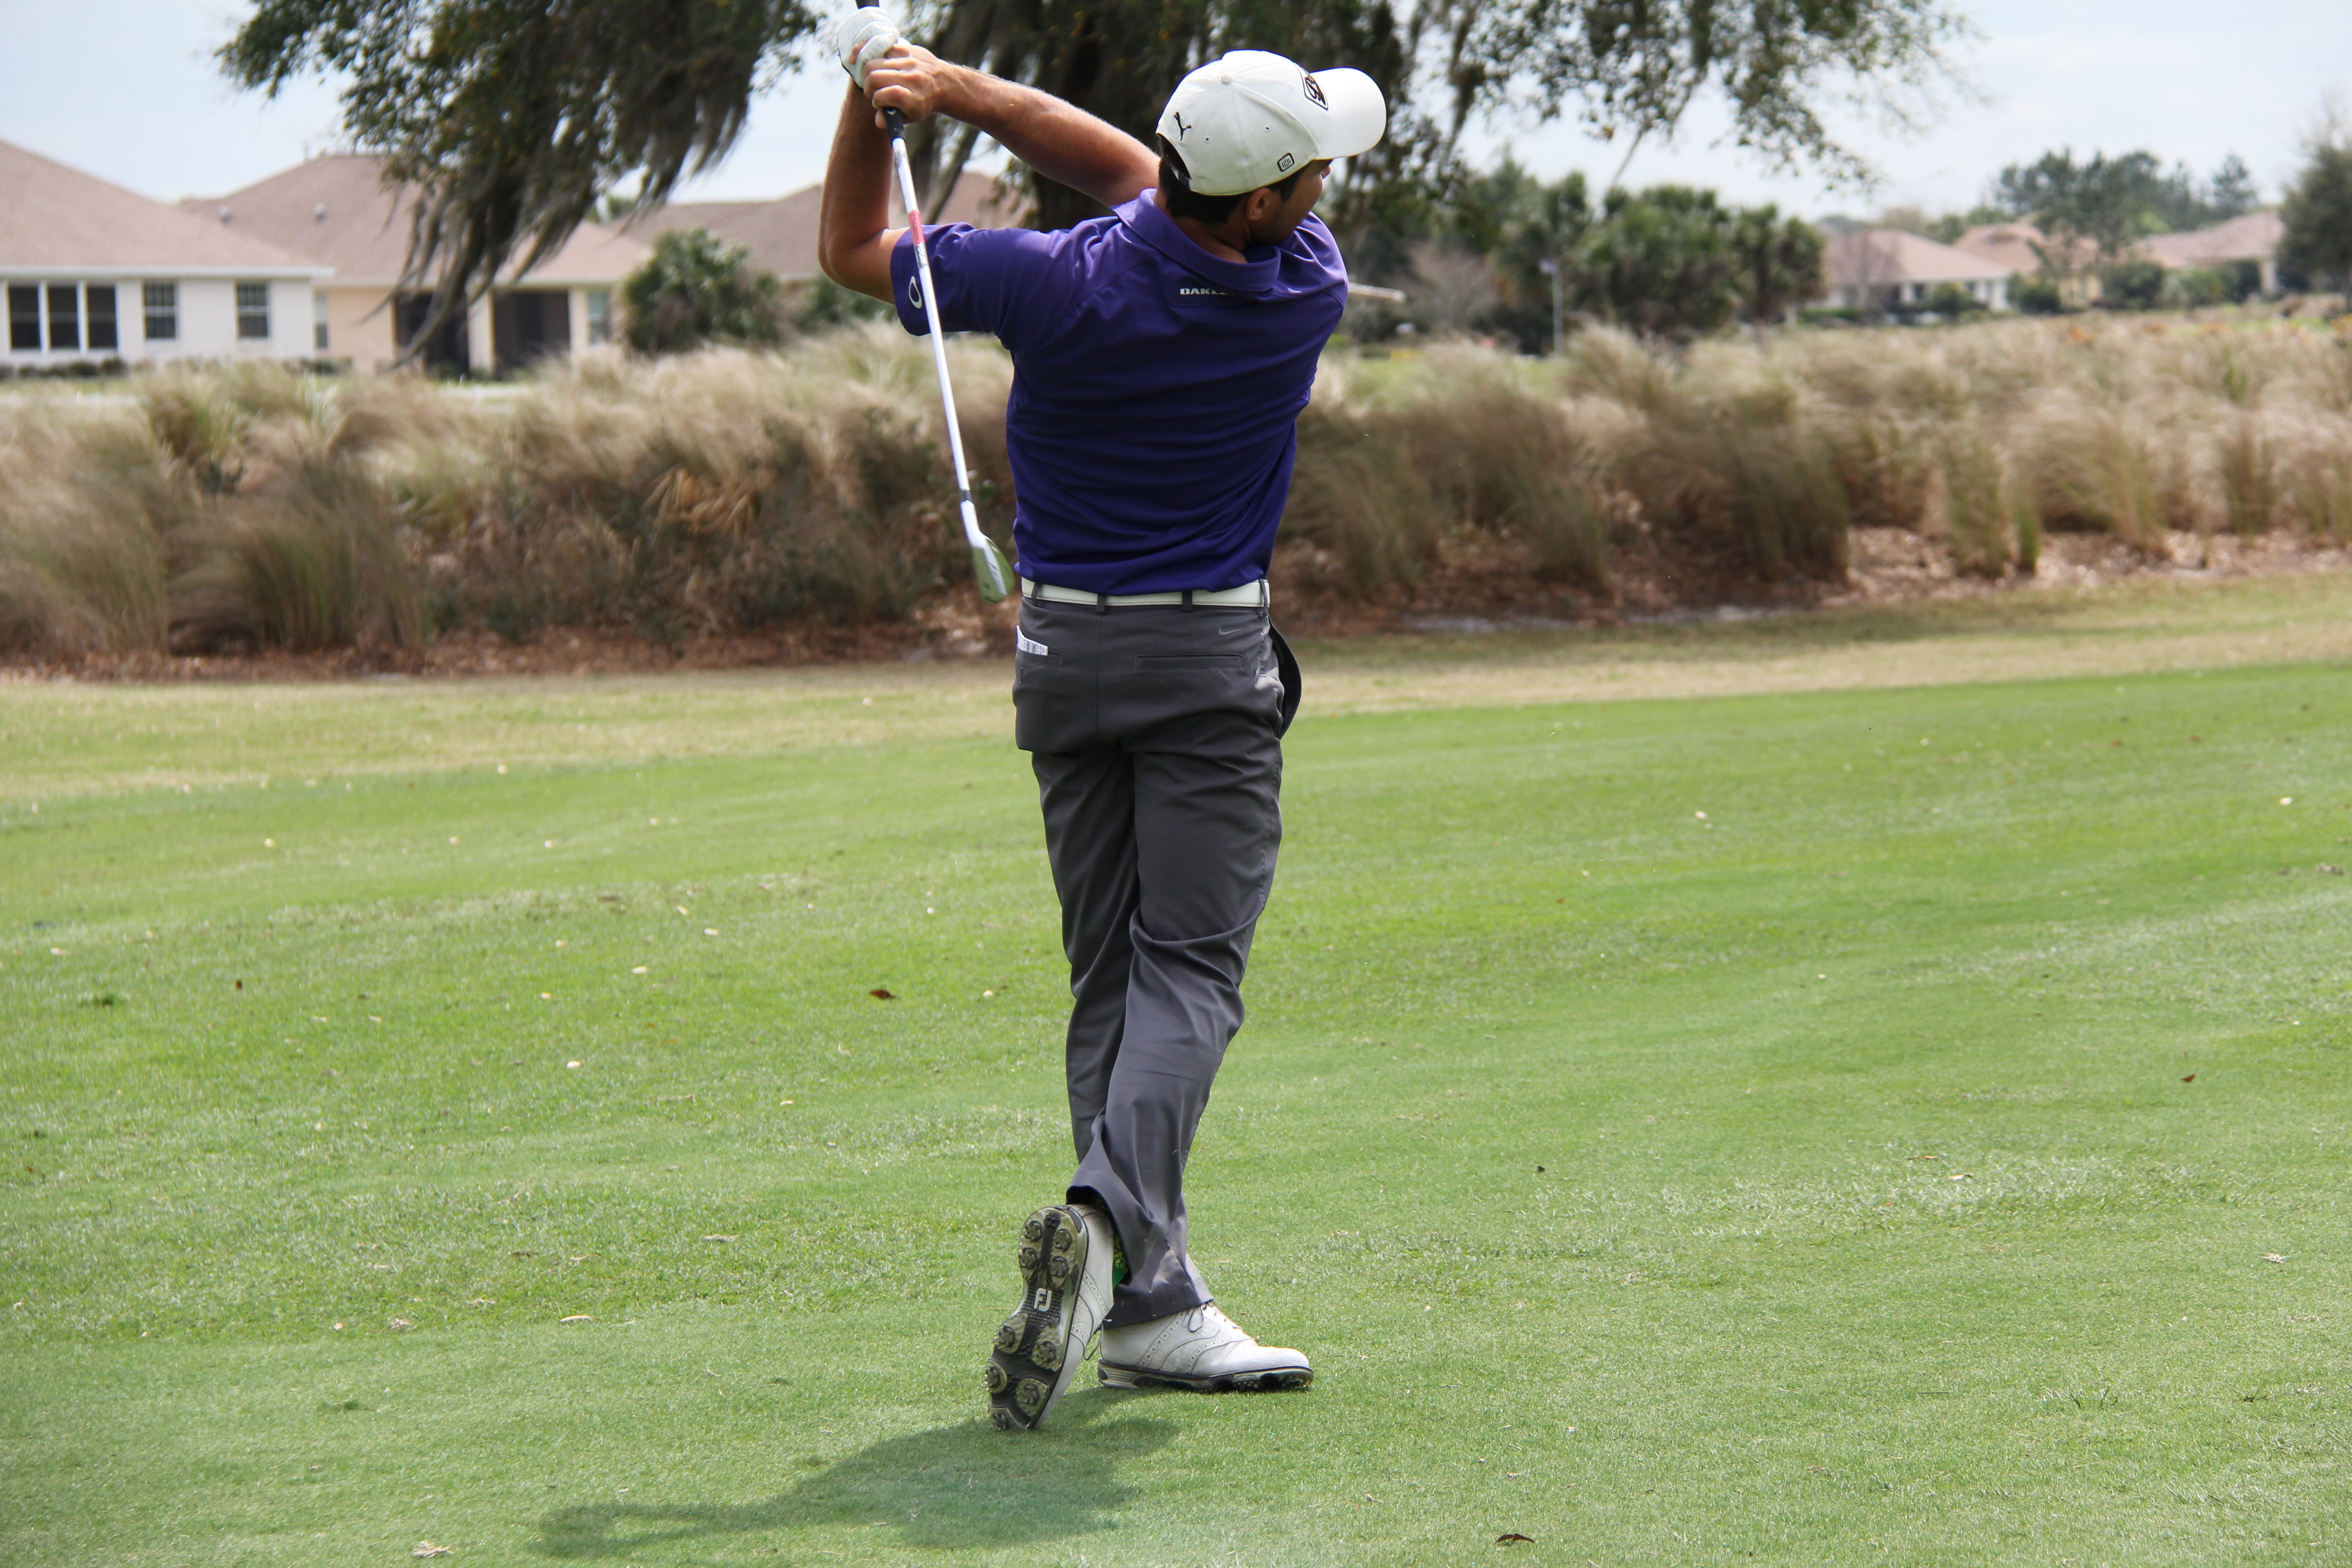 Golf swing during the Ocala Open golf tournament at Candler Hills Golf Club